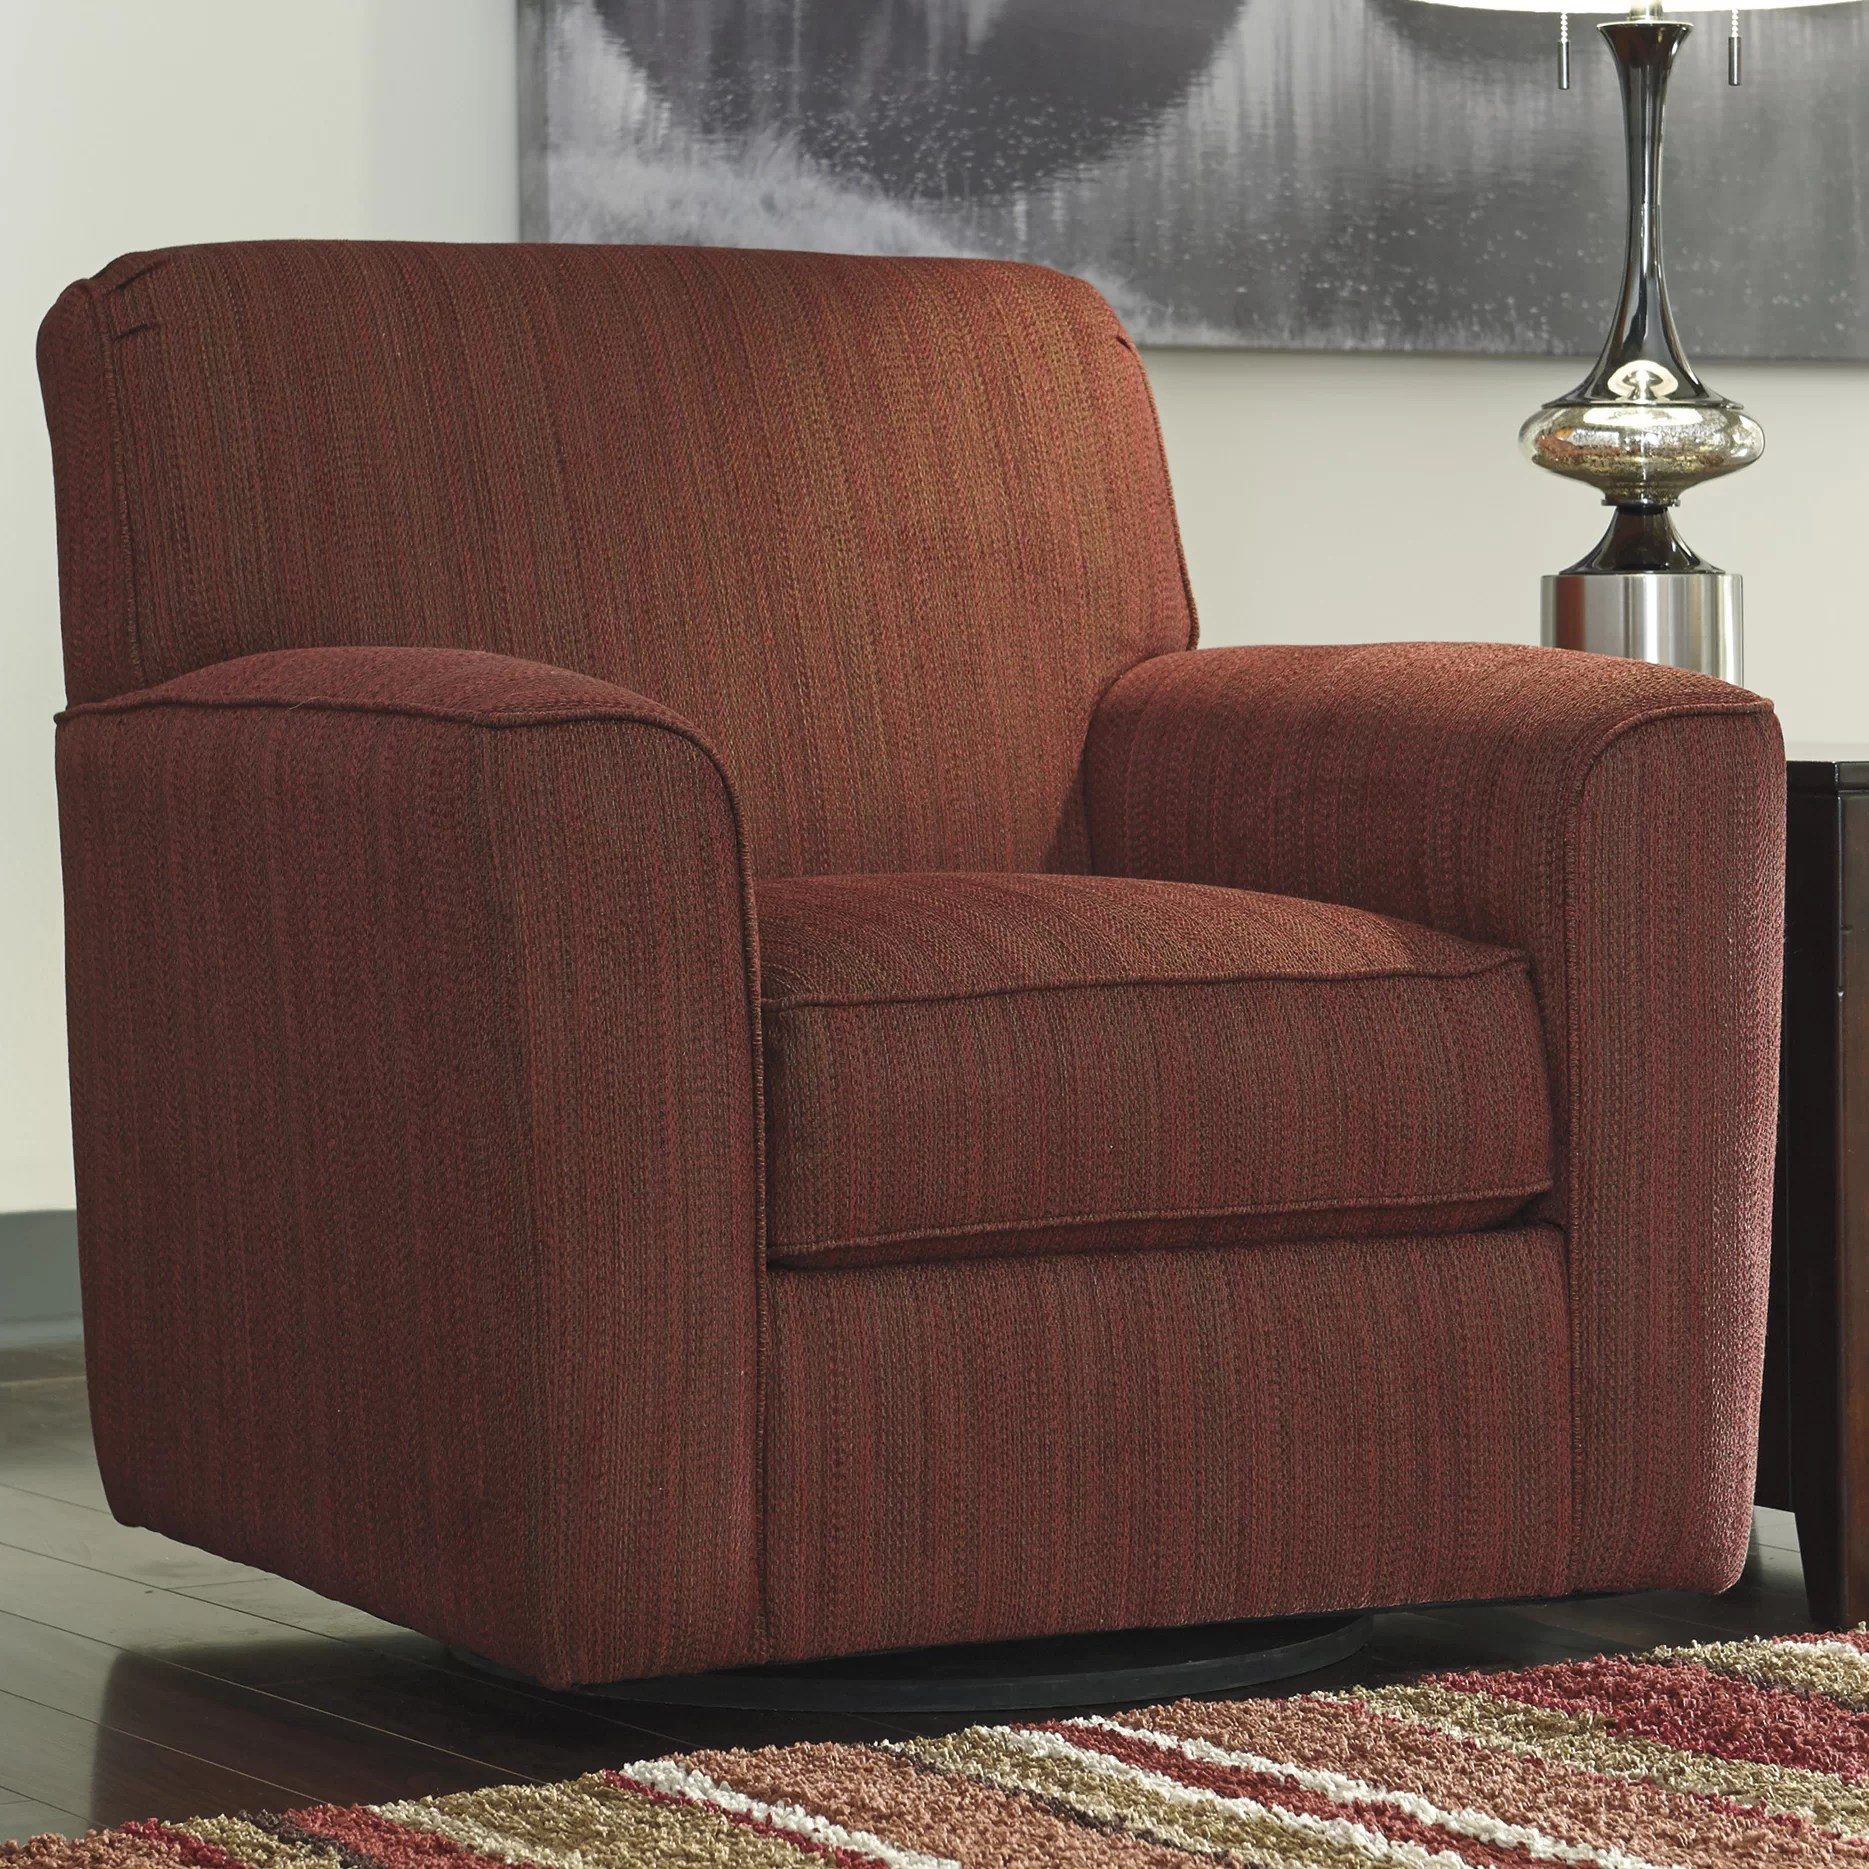 Signature Design by Ashley Swivel Arm Chair  Reviews